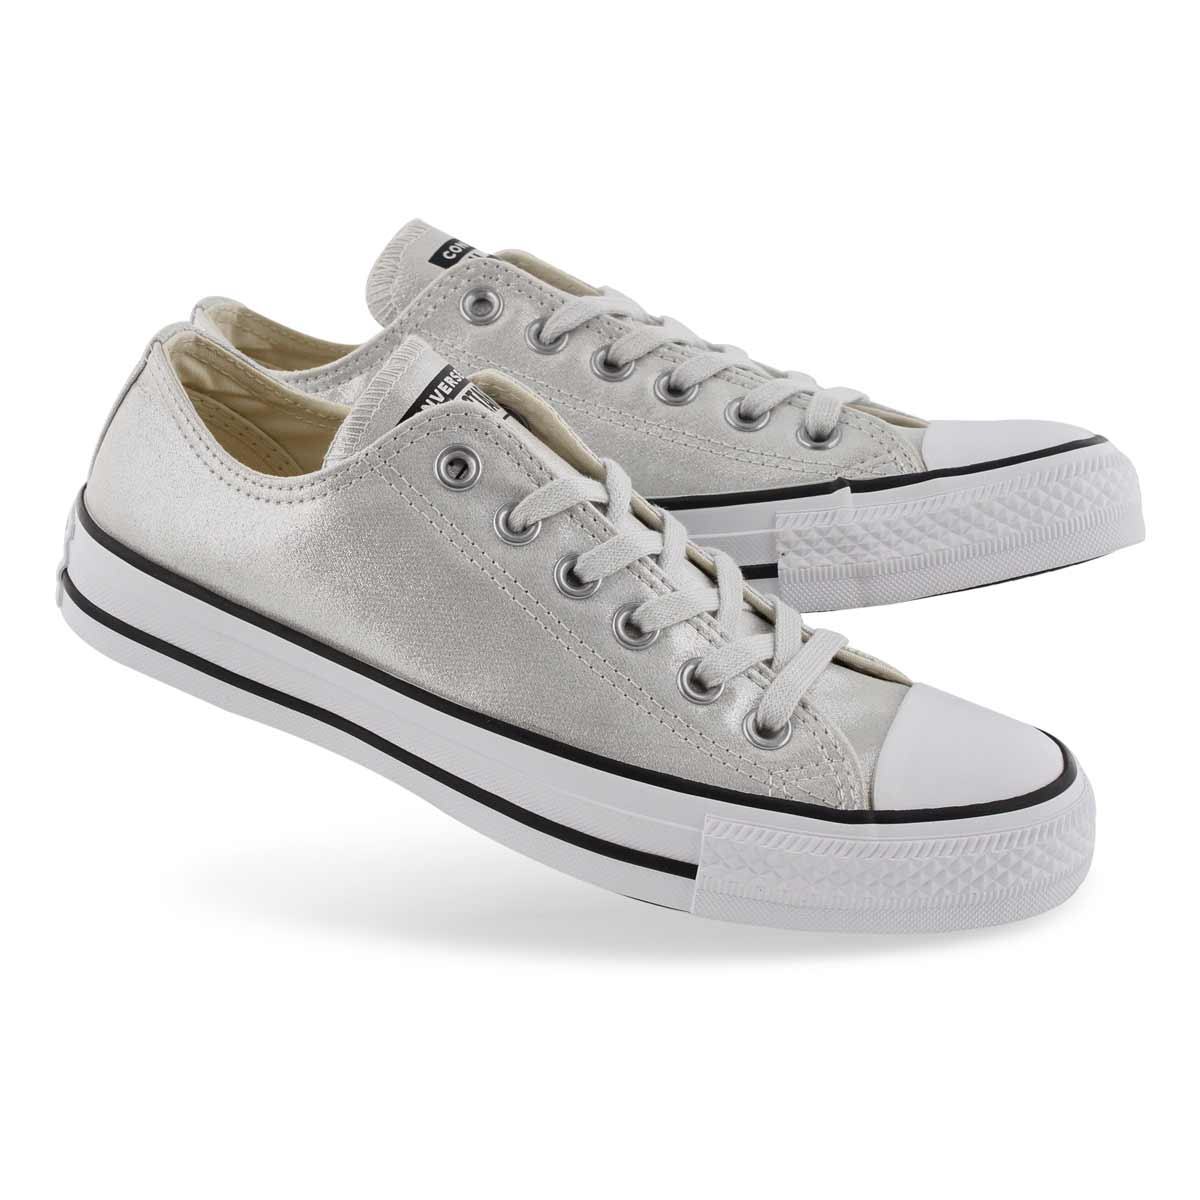 Women's  ALL STAR CLASSIC TWILIGHT COURT sneakers